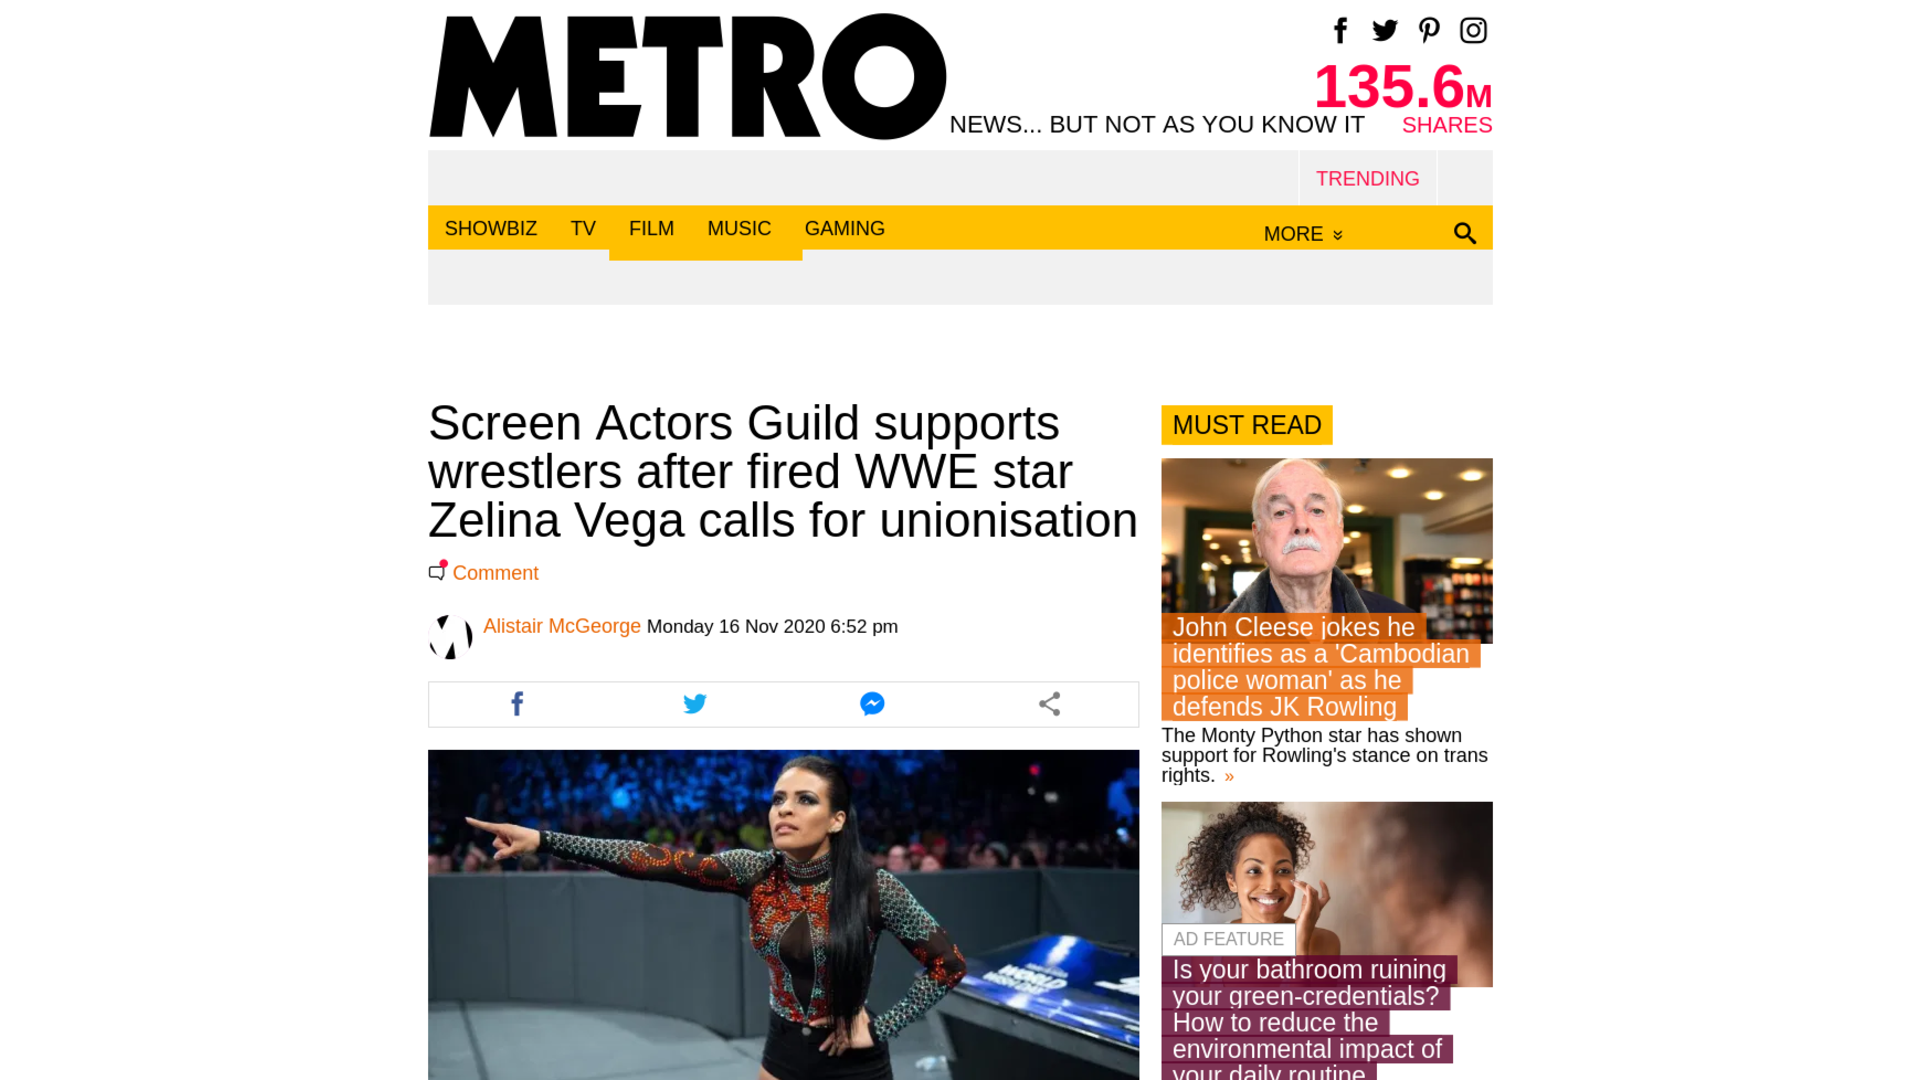 Fairness Rocks News Screen Actors Guild supports wrestlers after fired WWE star Zelina Vega calls for unionisation